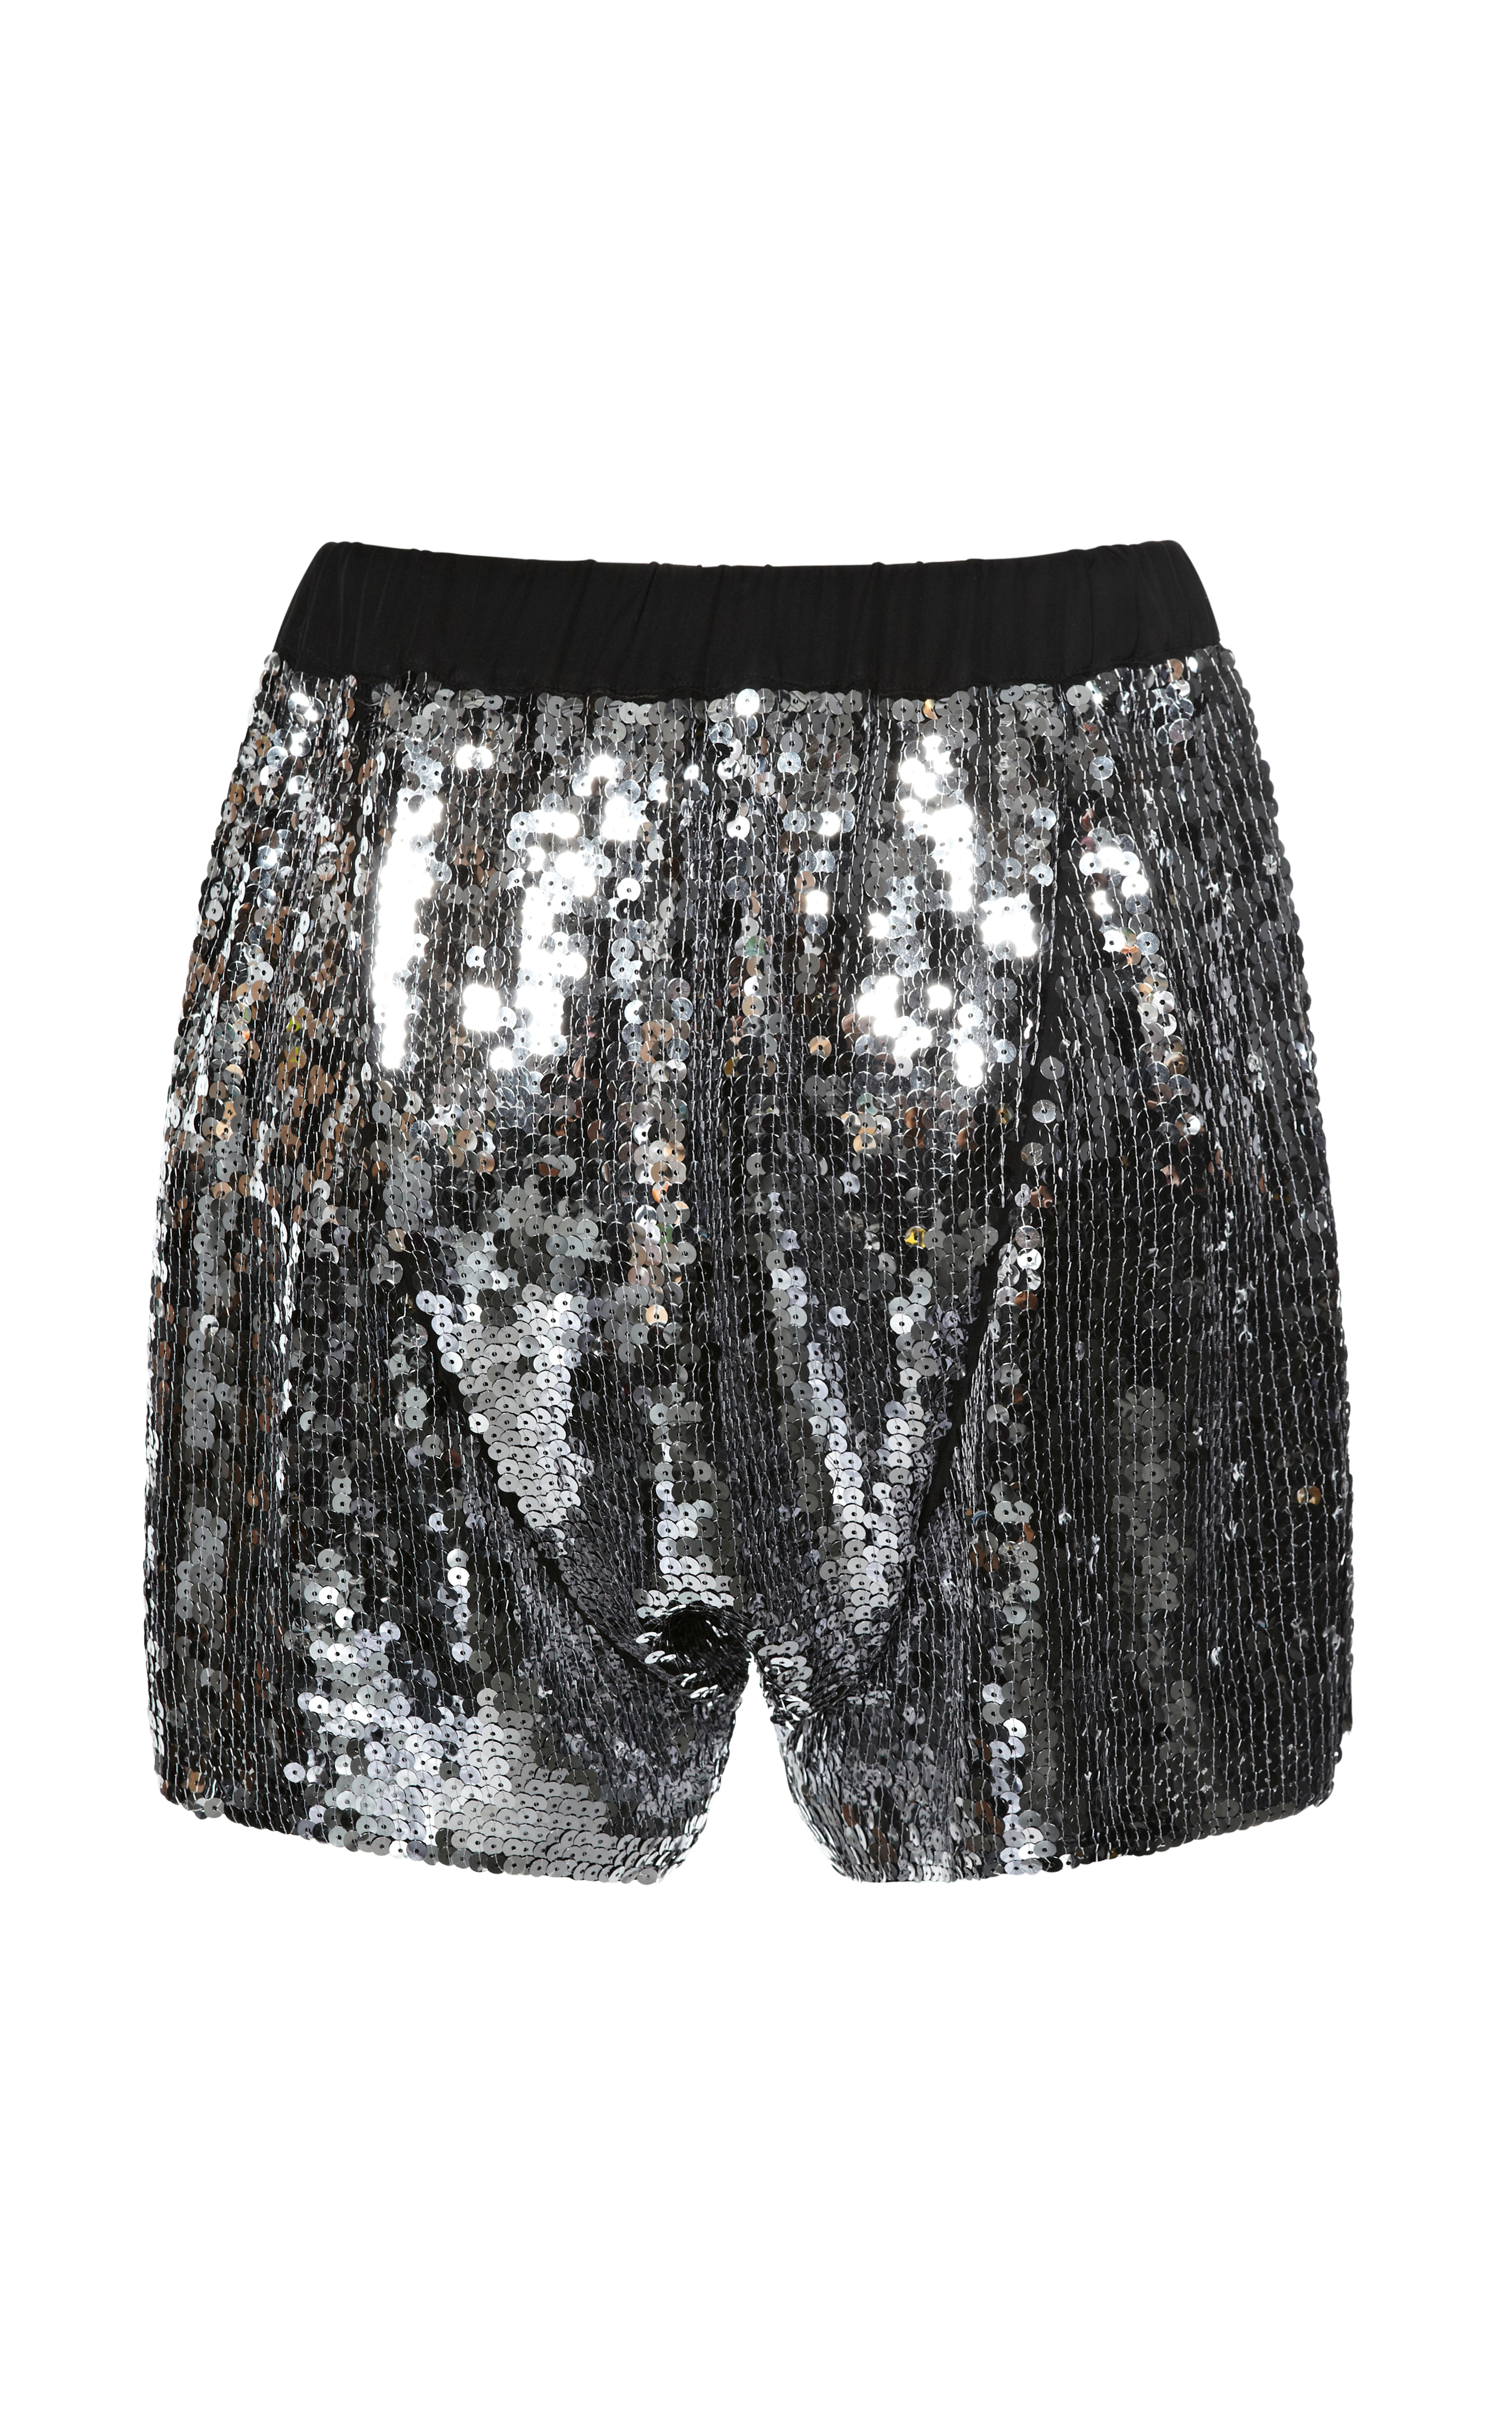 N°21 'boxer' Metallic Sequin Shorts in Metallic - Lyst